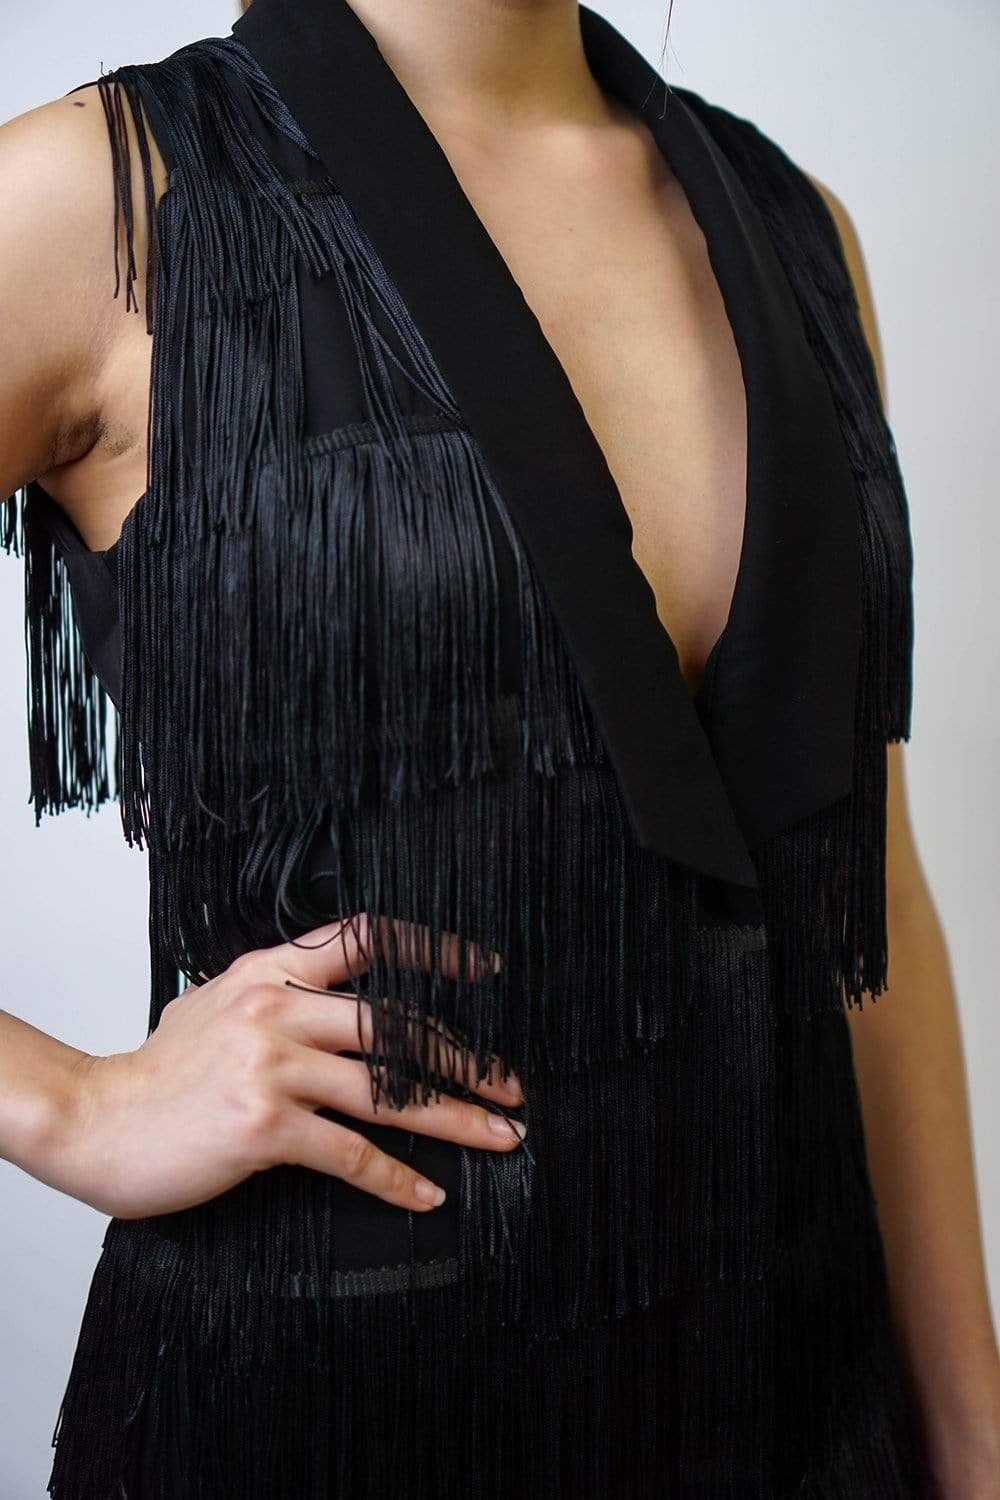 DRESS Awesome Fringe Dress - Chloe Dao